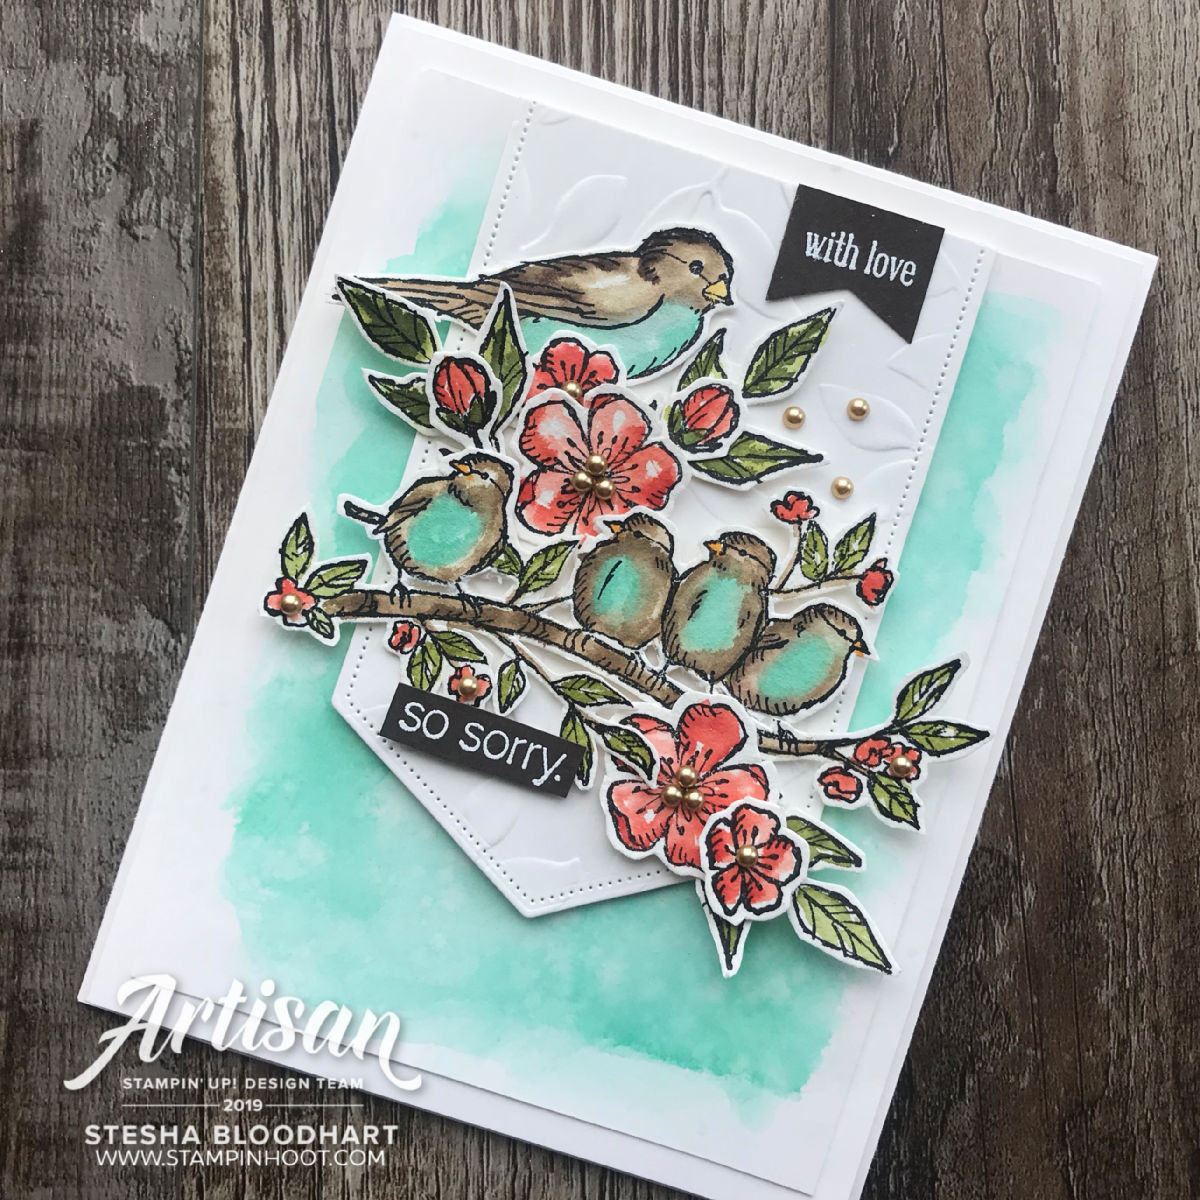 Free As A Bird Bundle by Stampin' Up! Card by 2019 Artisan Stesha Bloodhart, Stampin' Hoot!